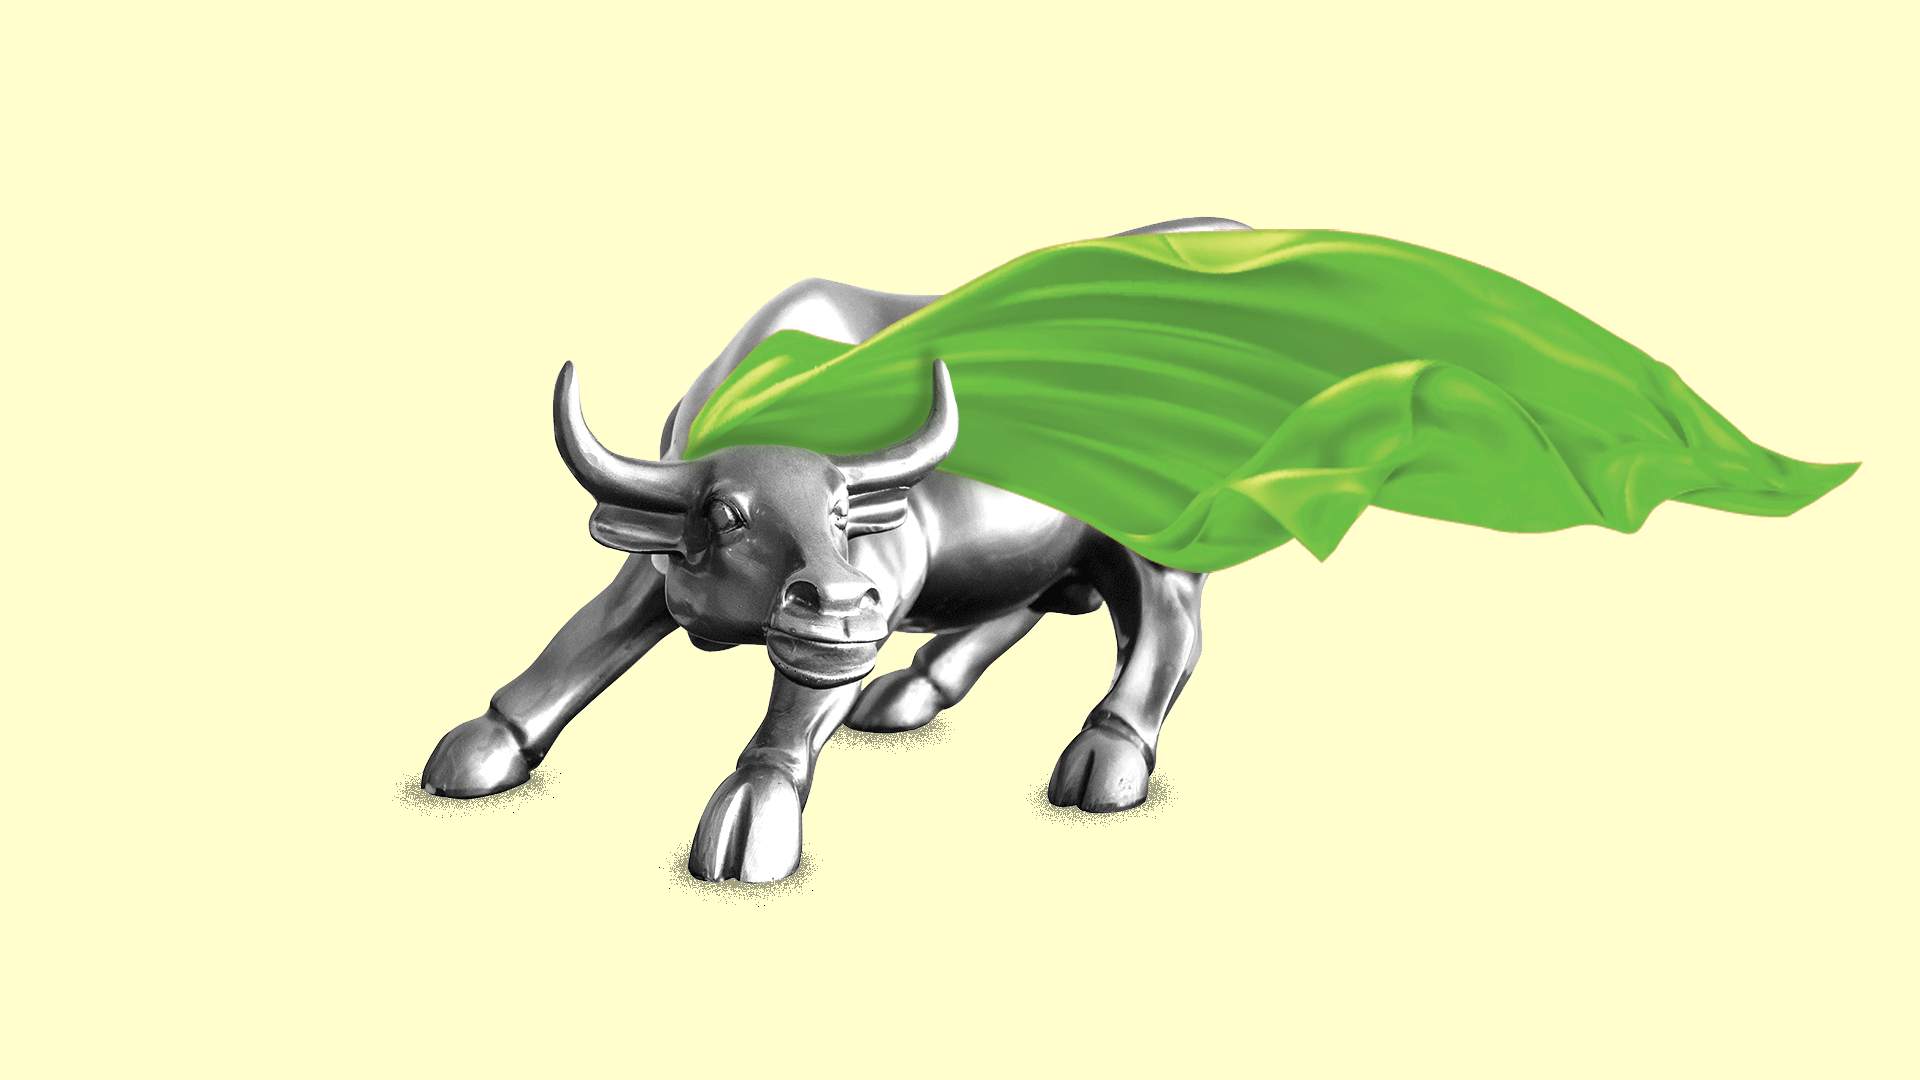 In this illustration, the Wall Street bull has a green cape.